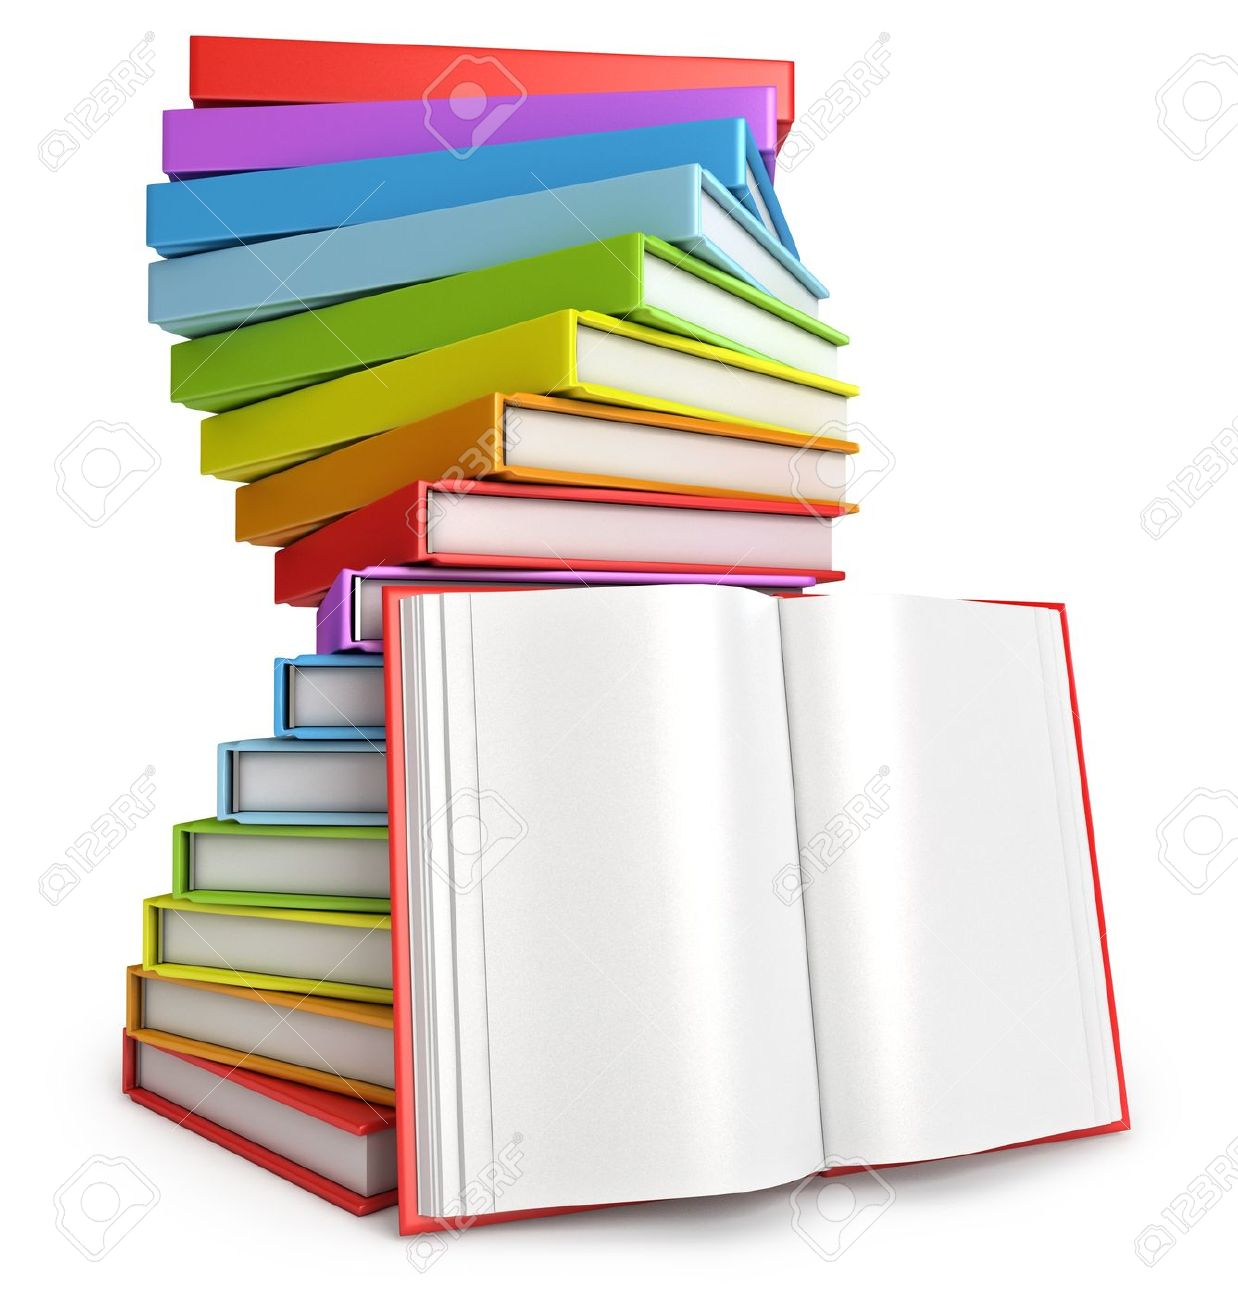 Pile of books, Open book, White background, 3d render Stock Photo - 17049621